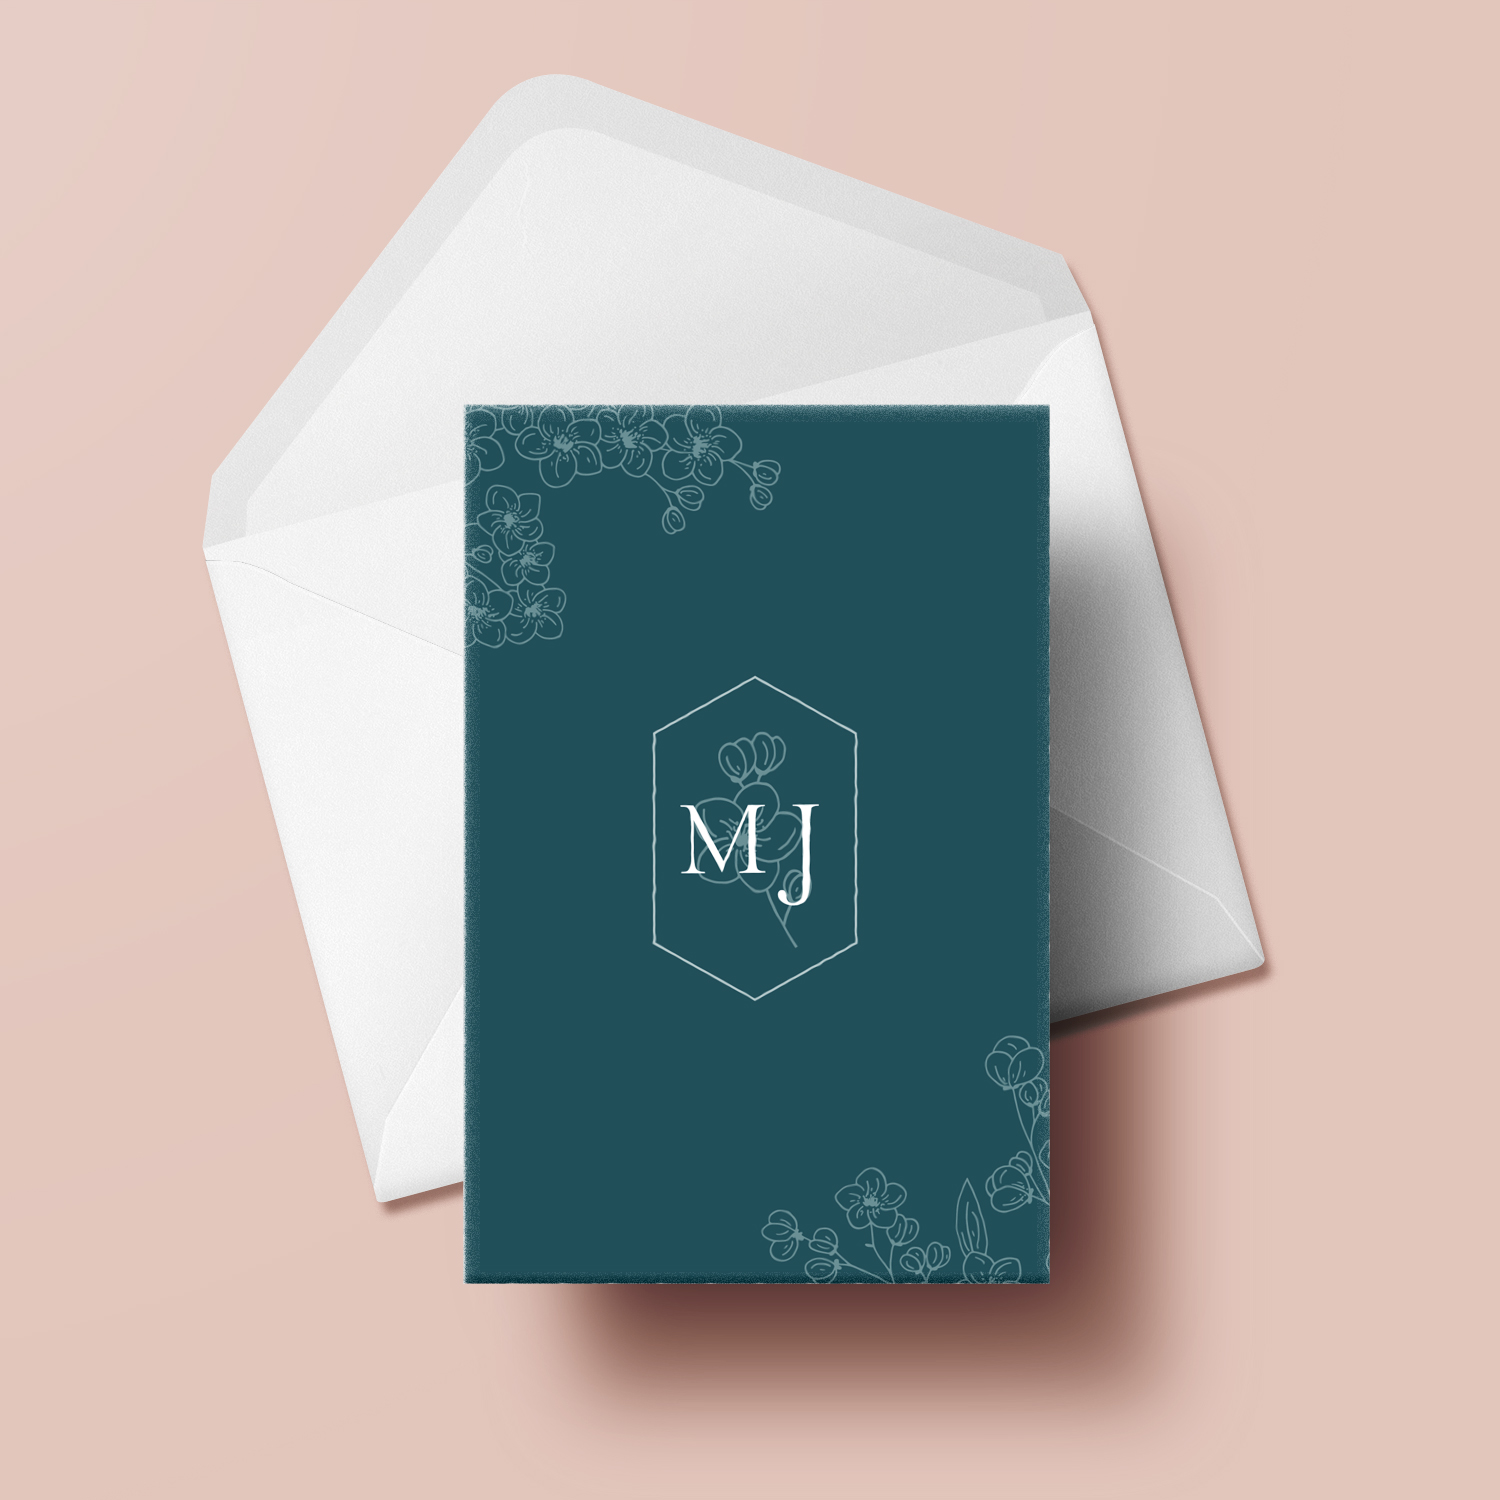 MJ Mendoza Photography - Logo, Branding and Squarespace Website design for small businesses by Bea & Bloom Creative Design Studio